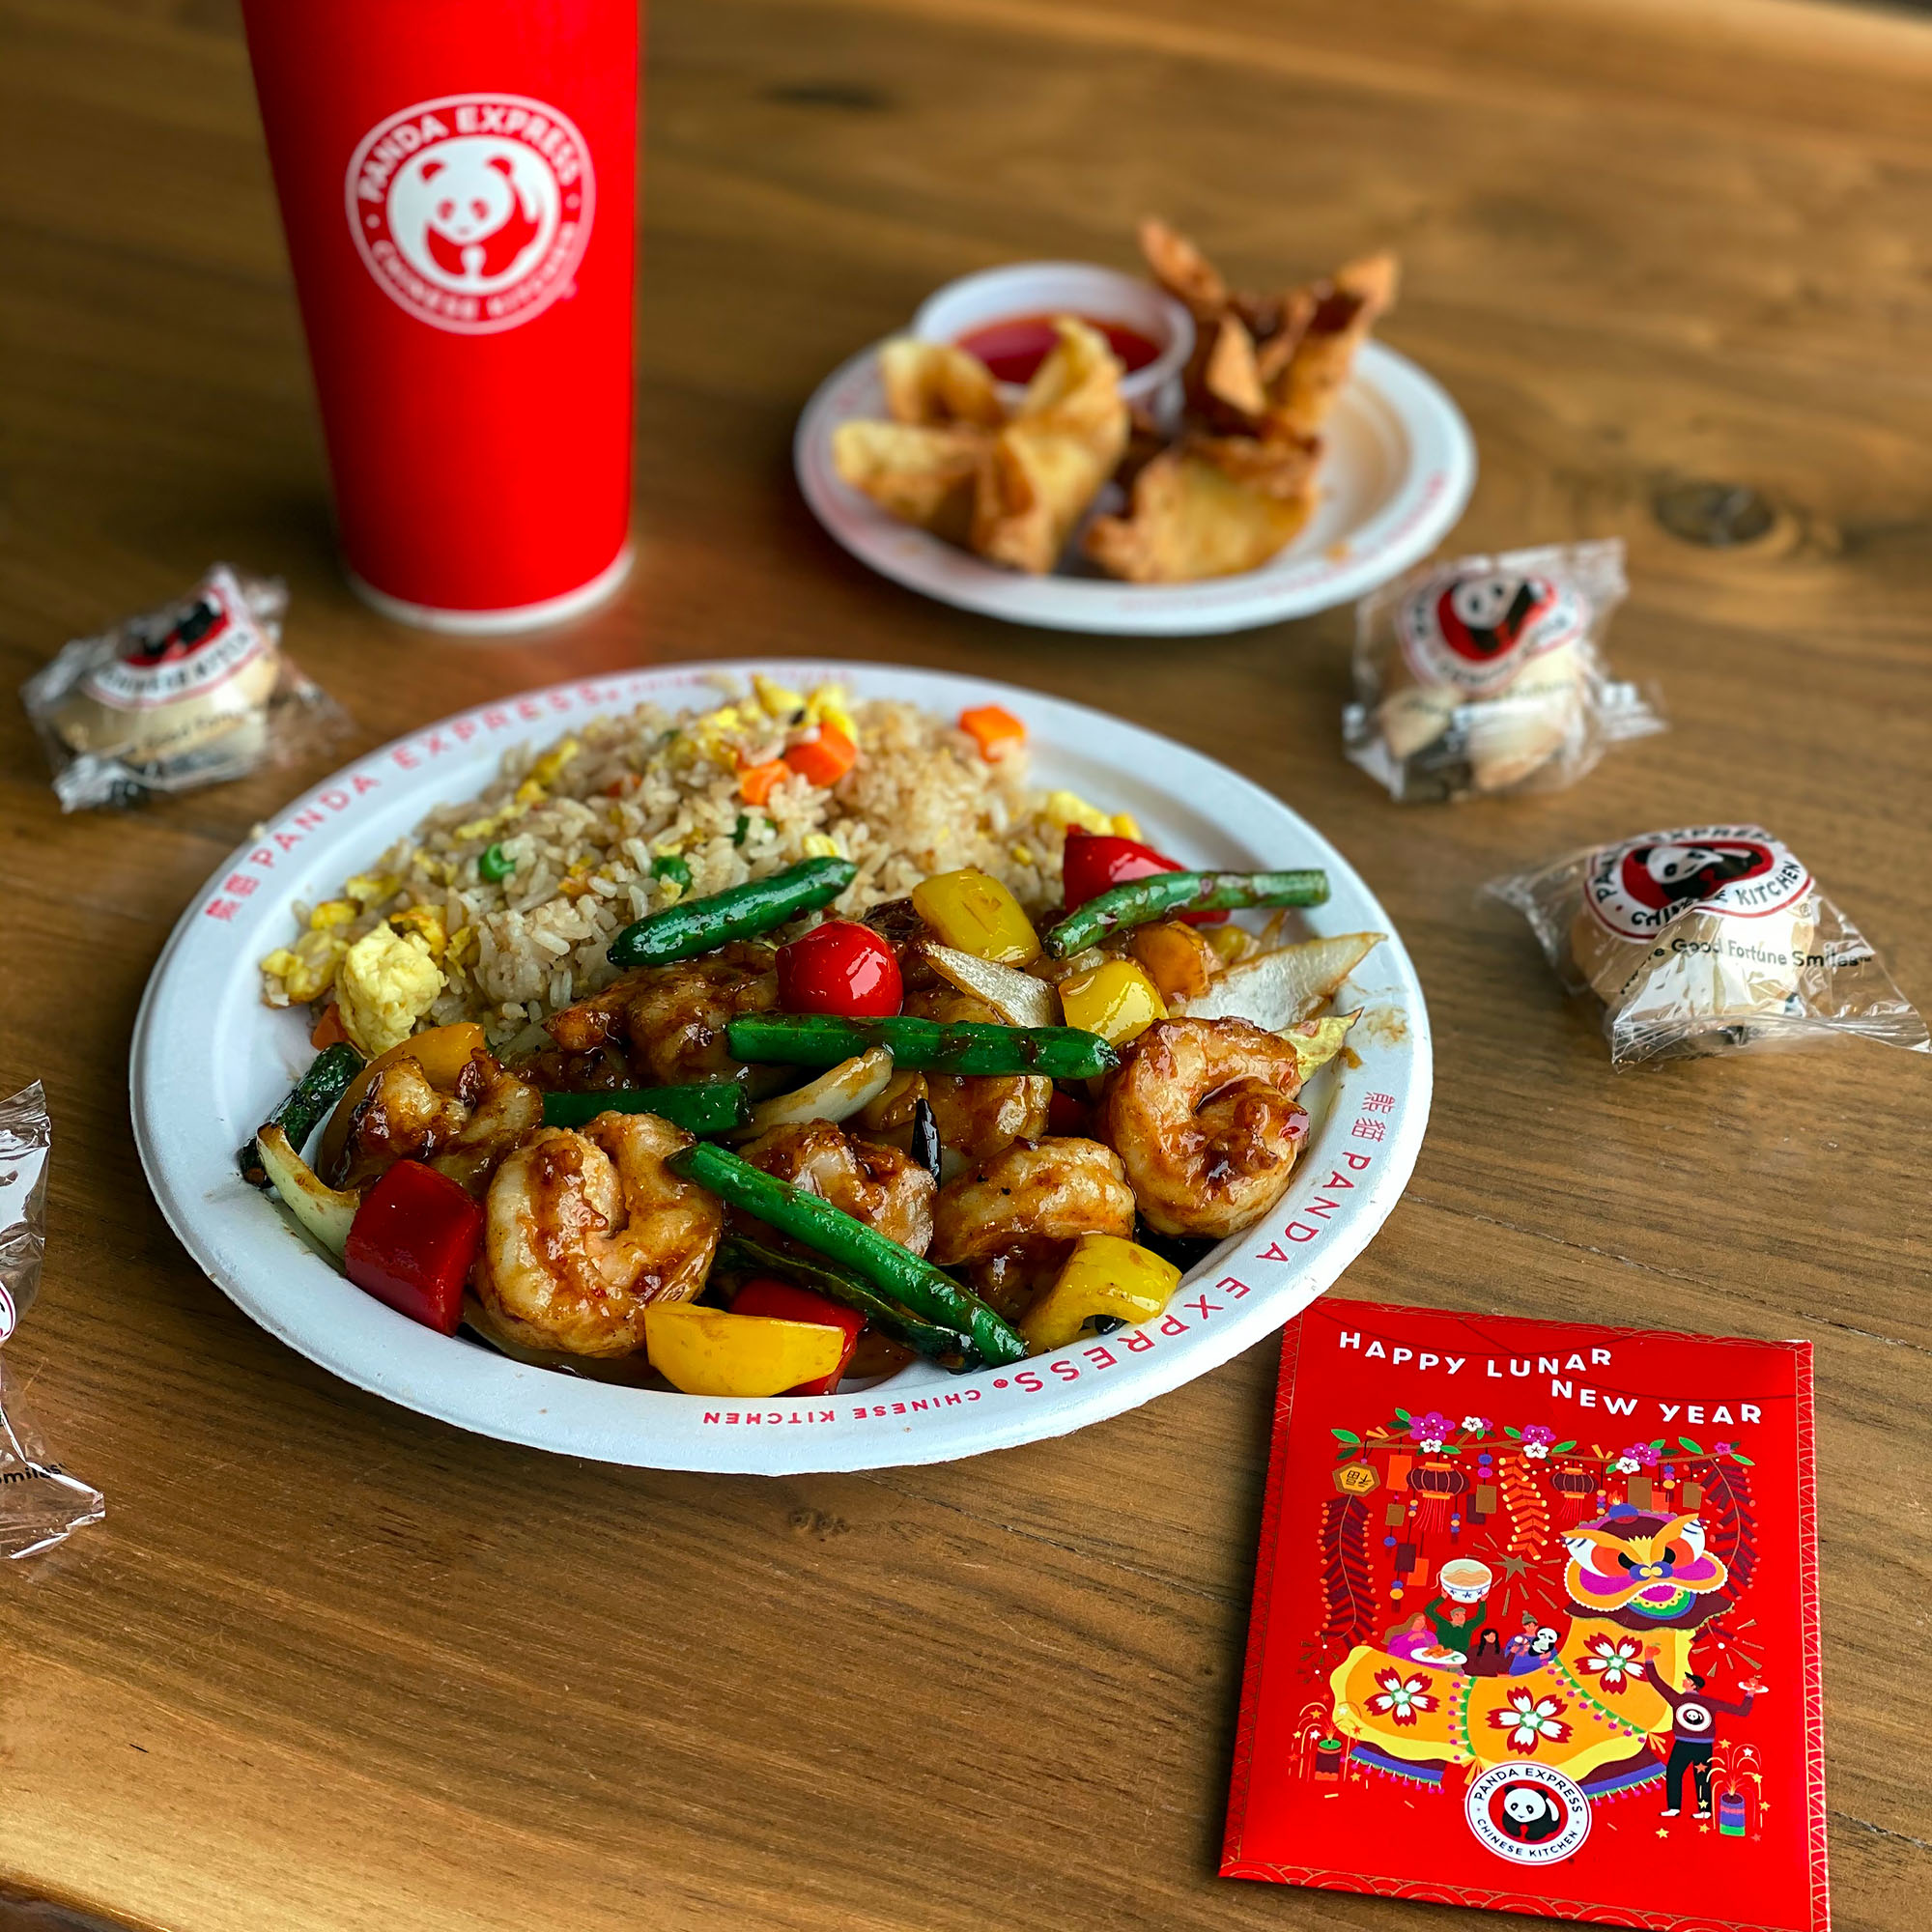 Panda Express Firecracker Shrimp